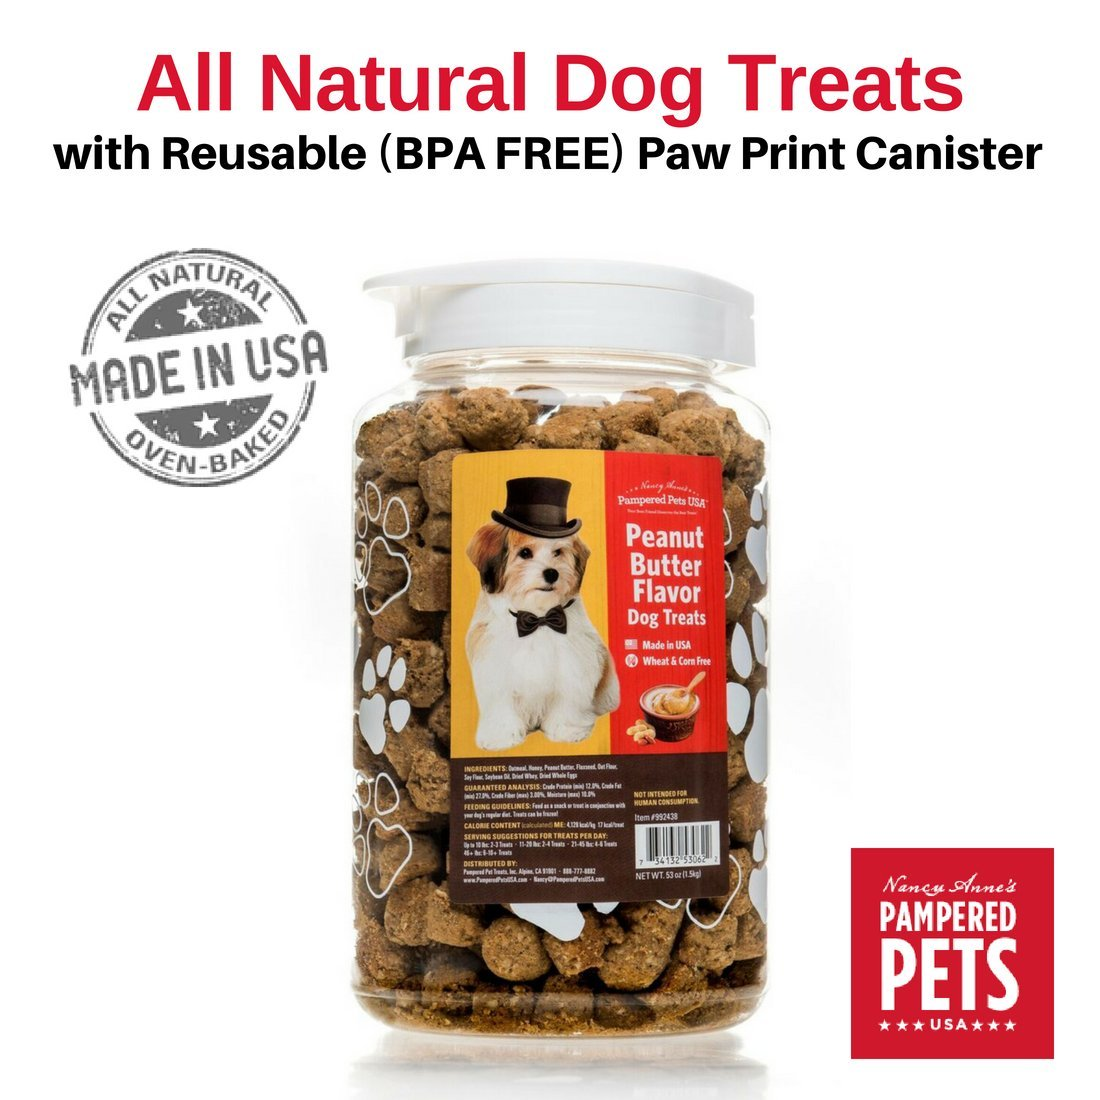 Peanut Butter Flavor Dog Treats in 53 ounces, BPA-Free, Reusable Canister - Made in USA - Oven-baked, Soft and Delicious